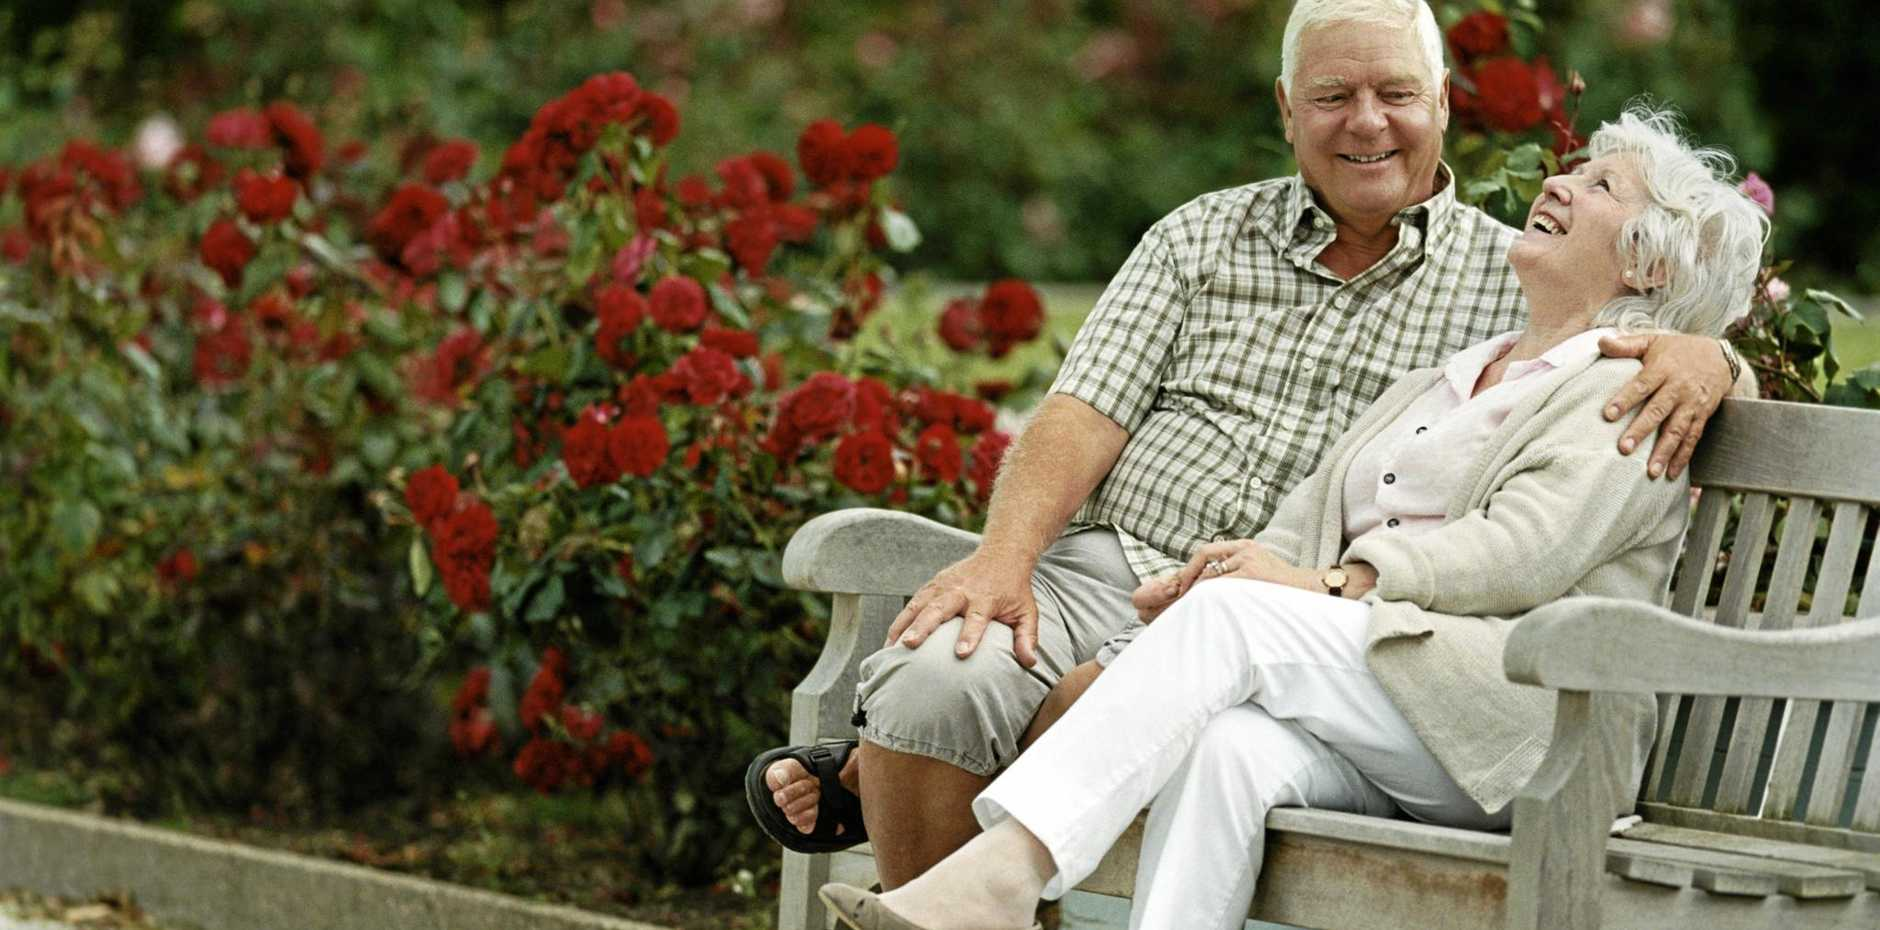 A Senior Couple Sitting on a Park Bench, enjoying each other company.